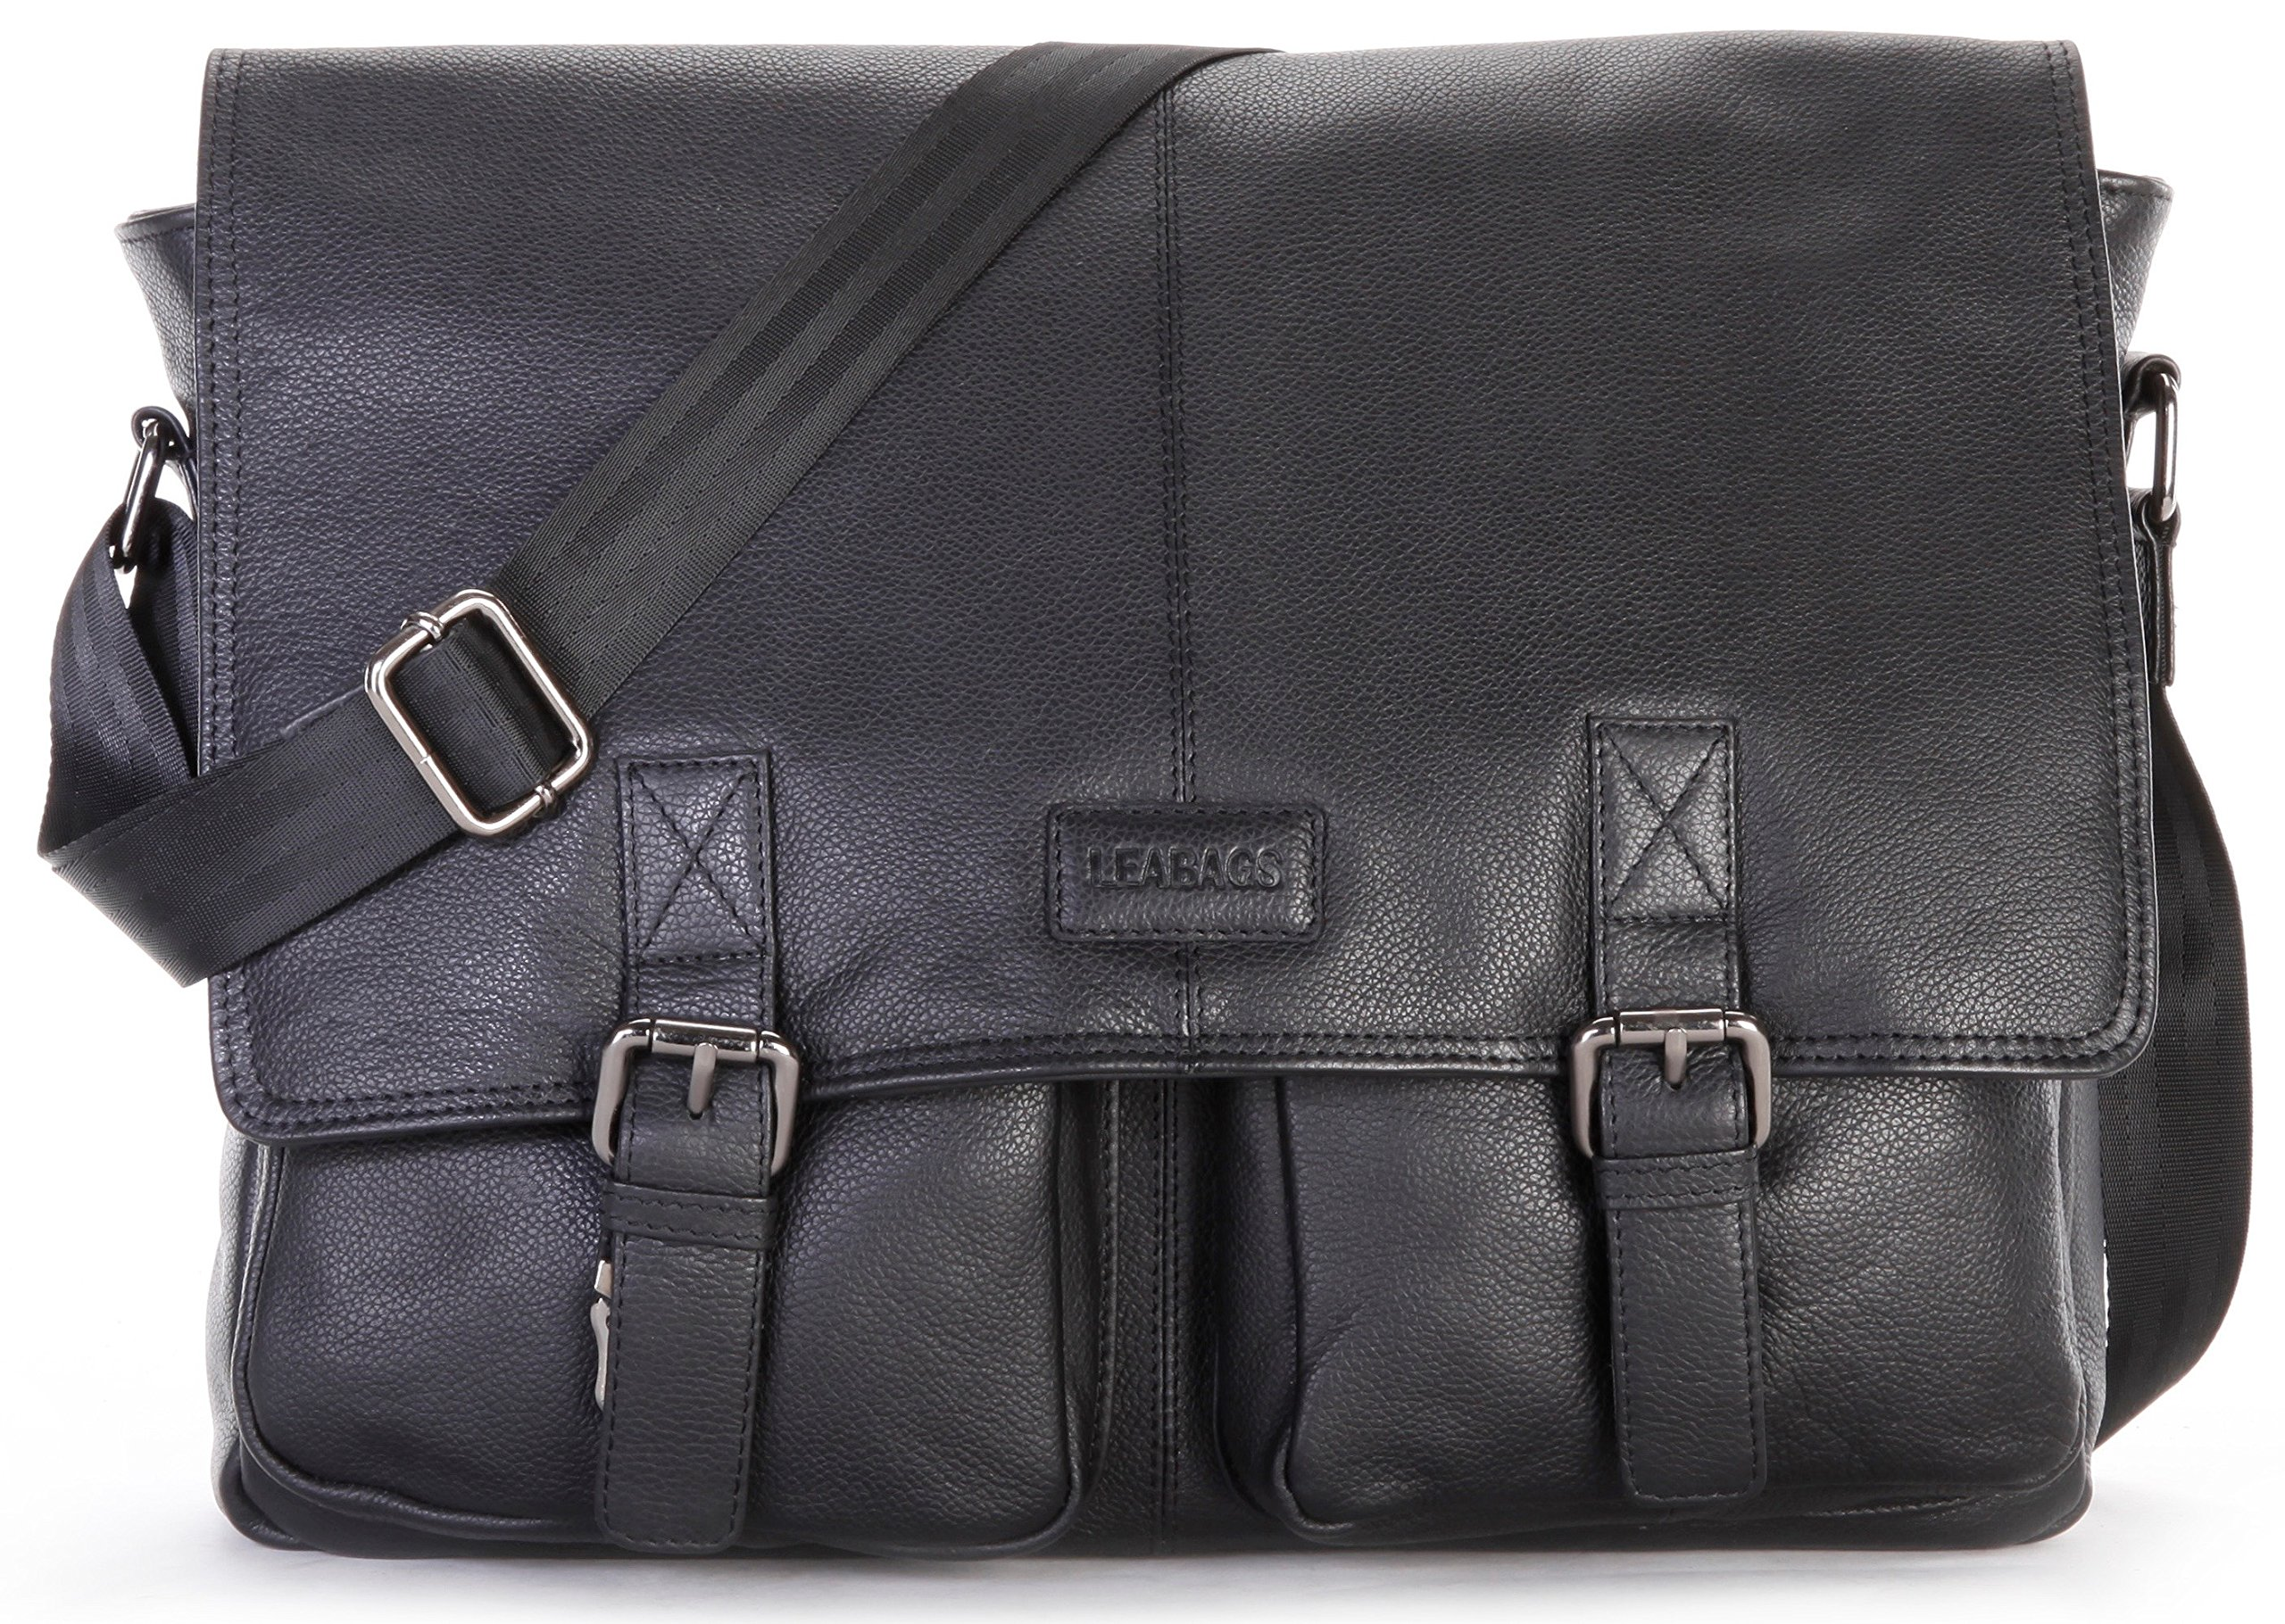 LEABAGS Cambridge genuine buffalo leather messenger bag in vintage style - OnyxBlack